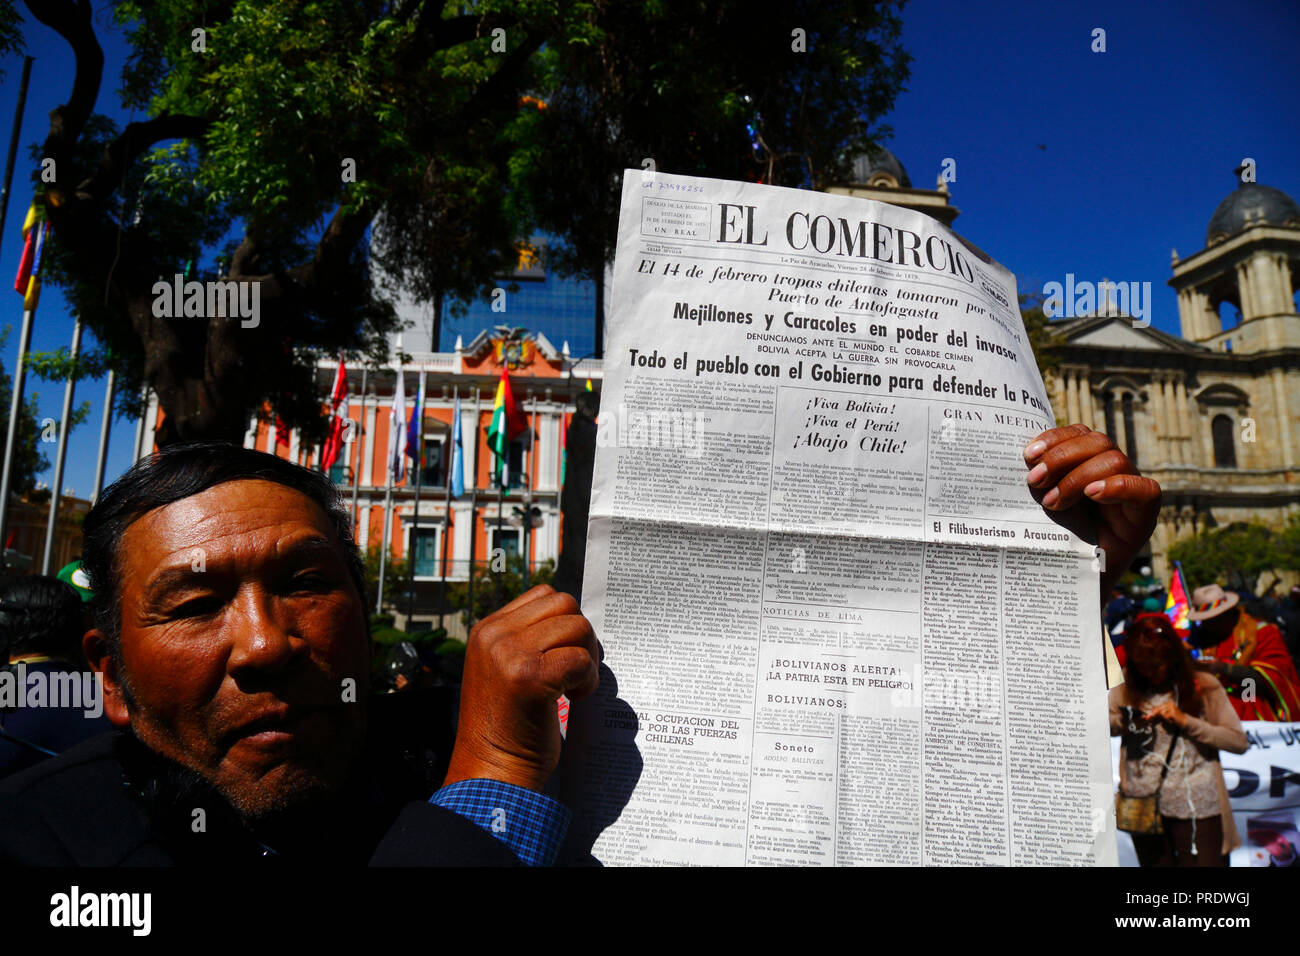 La Paz, Bolivia, 1st October 2018. A man holds a copy of the El Comercio newspaper dated 28 February 1879 during the ruling for the case 'Obligation to Negotiate Access to the Pacific Ocean (Bolivia v. Chile)' at the International Court of Justice in The Hague. Bolivia presented the case to the ICJ in 2013; Bolivia lost its coastal Litoral province to Chile during the War of the Pacific in the 19th century and previous negotiations have made no progress from Bolivia's viewpoint. Credit: James Brunker/Alamy Live News - Stock Image